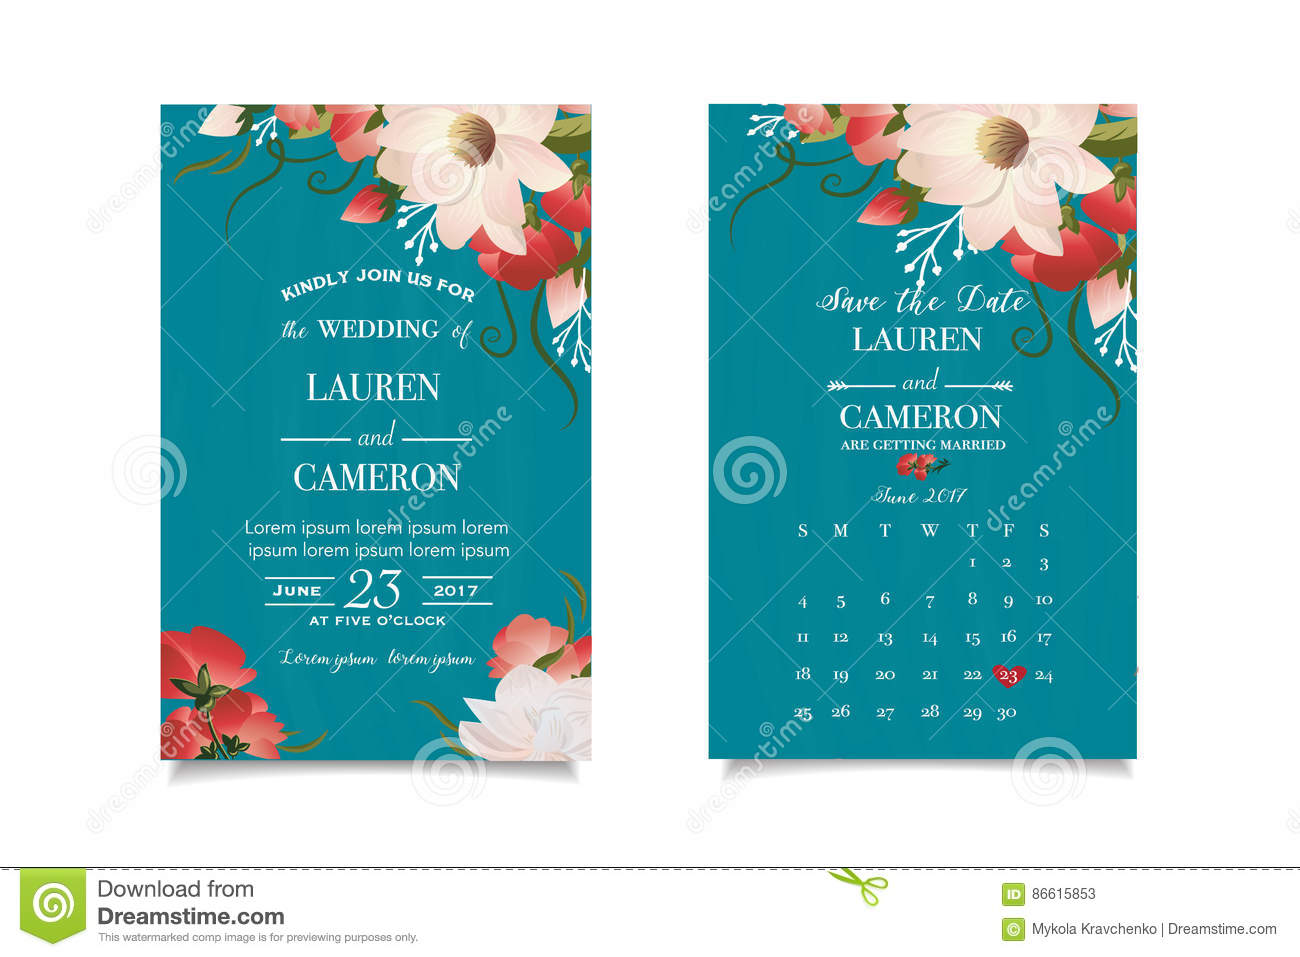 Emerald Green Invitation Card With Matched Date Wonderful Floral